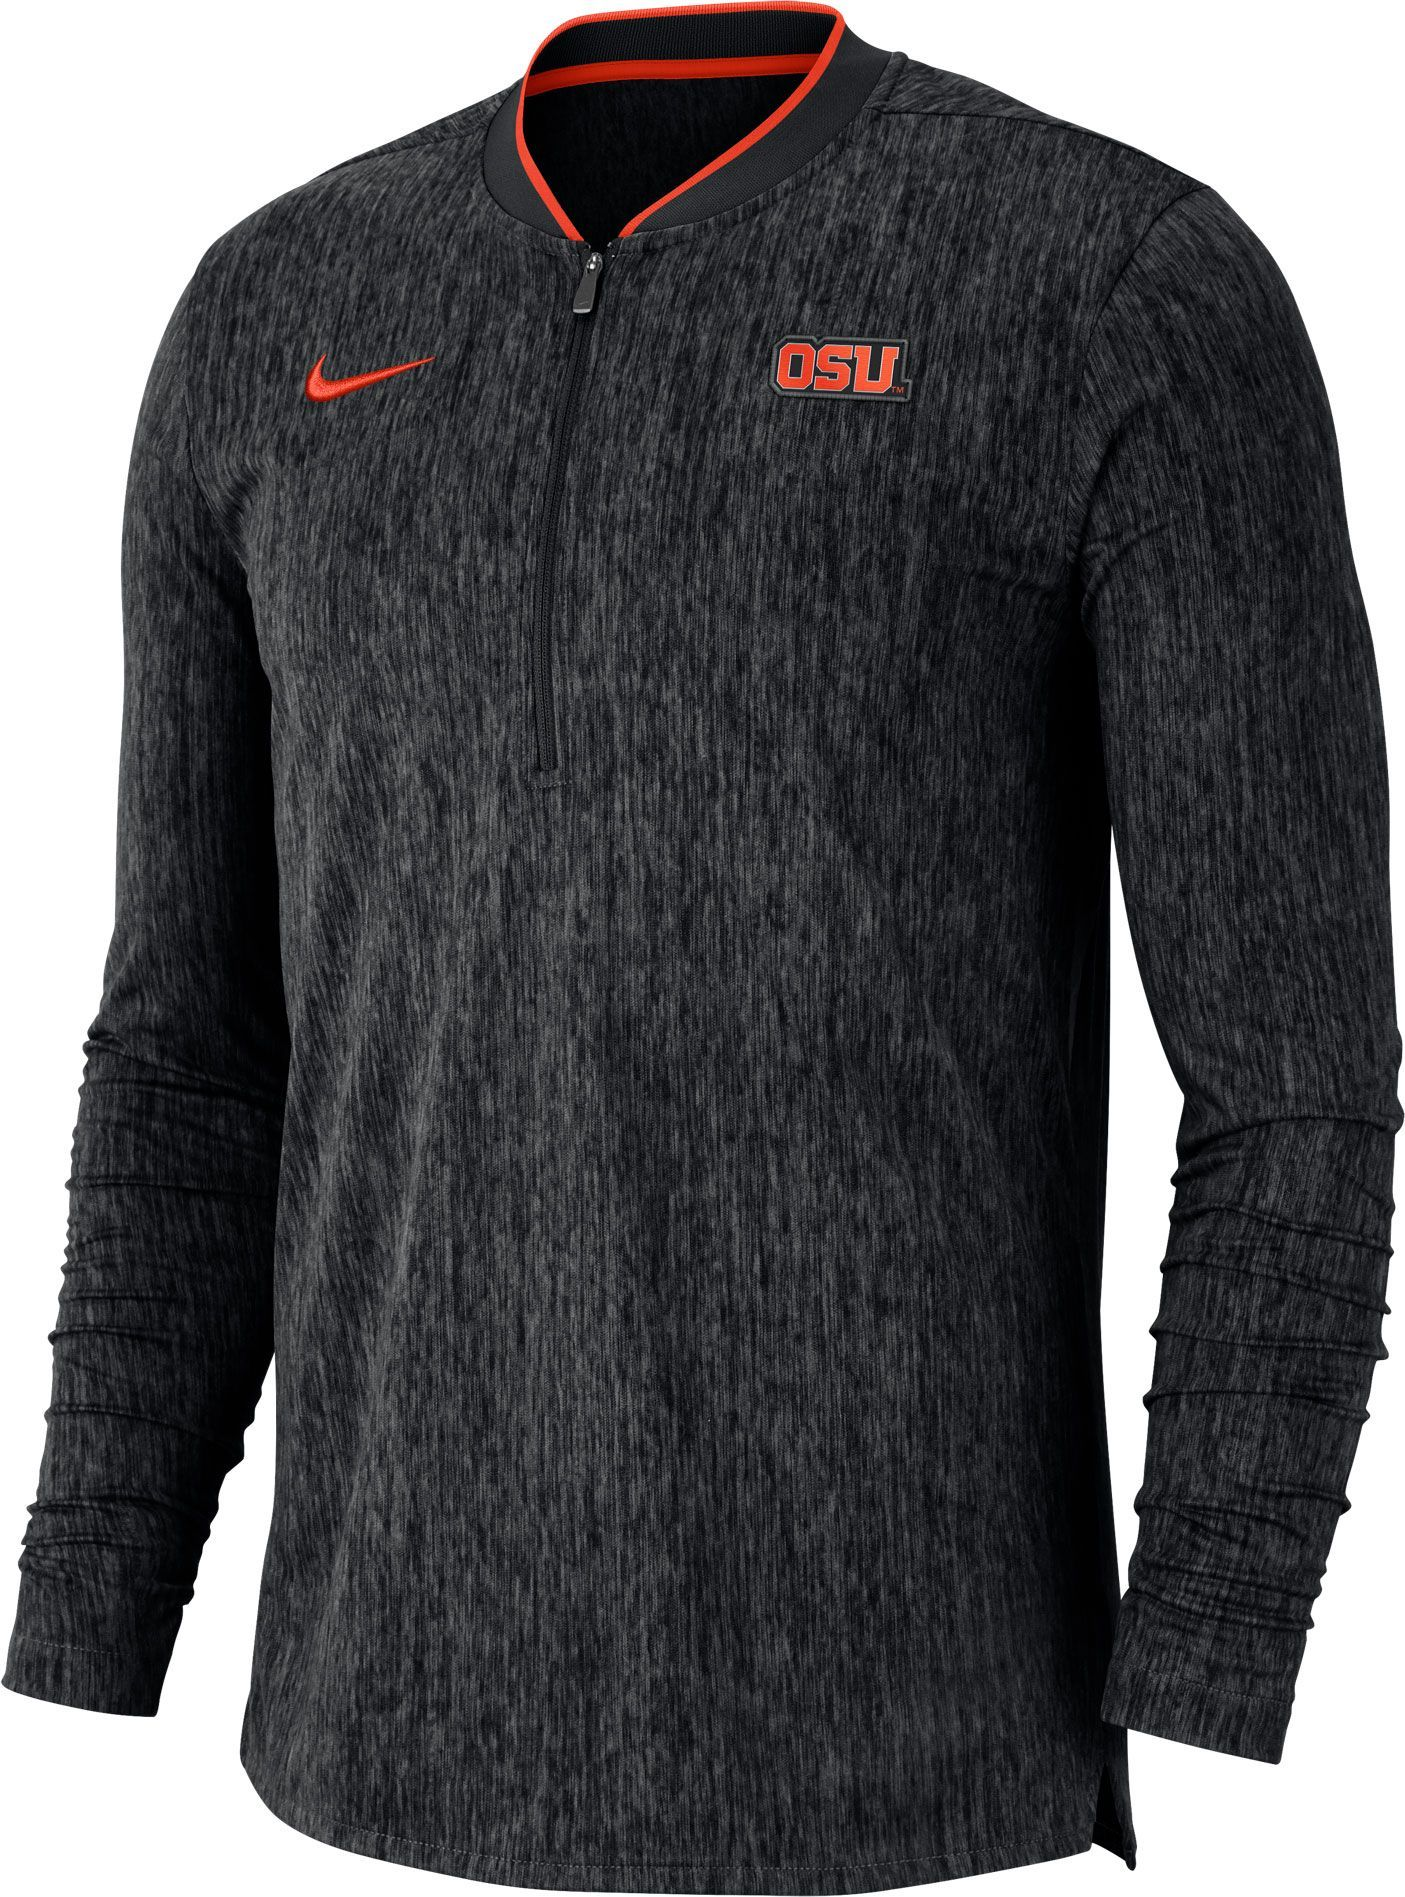 743c703499b Nike Men's Oregon State Beavers Coach Half-Zip Football Sideline Black  Jacket, Team